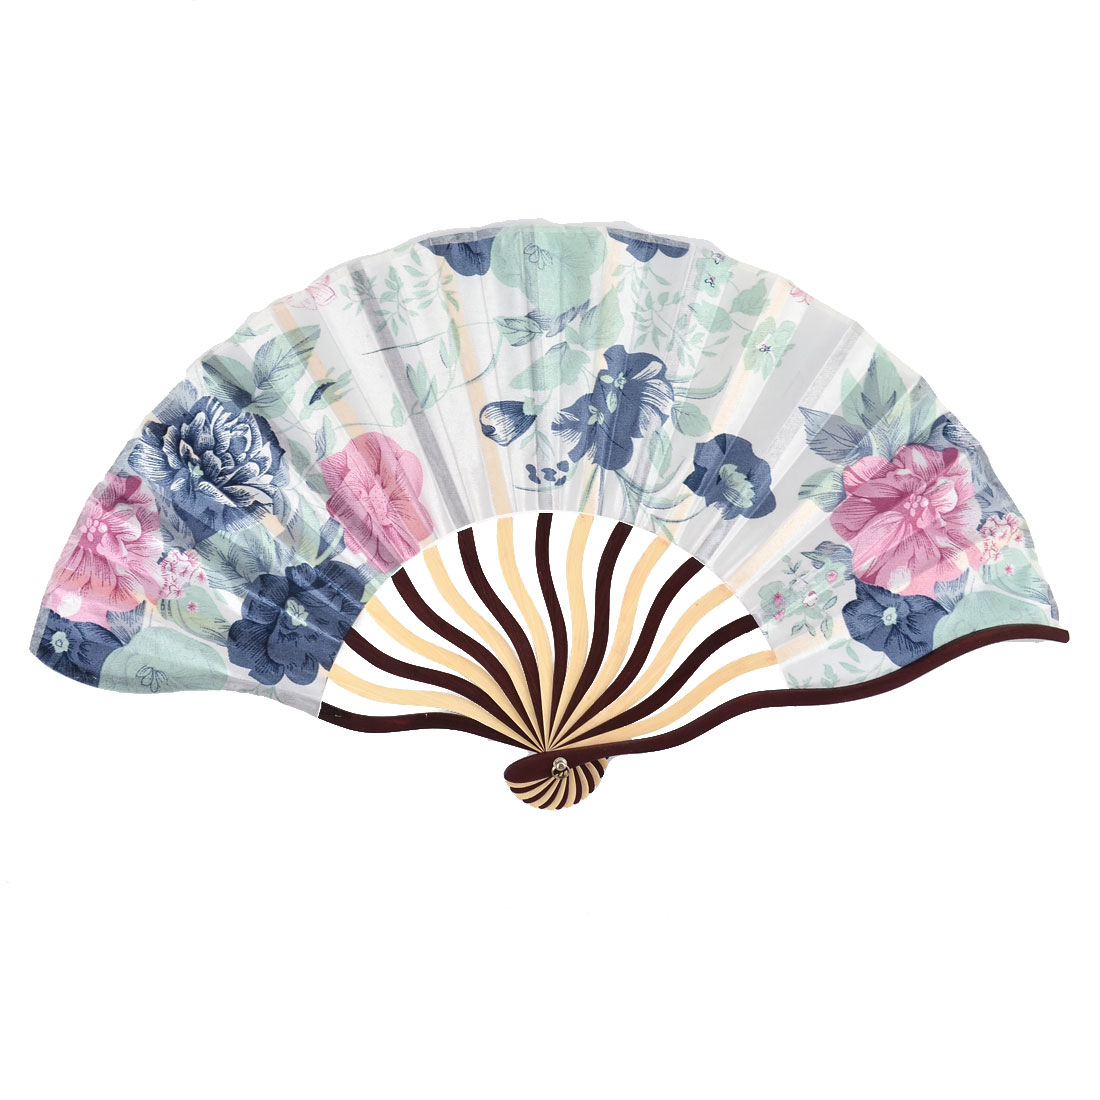 Bamboo Ribs Floral Leaf Pattern Classic Folding Hand Fan Colorful w Pouch